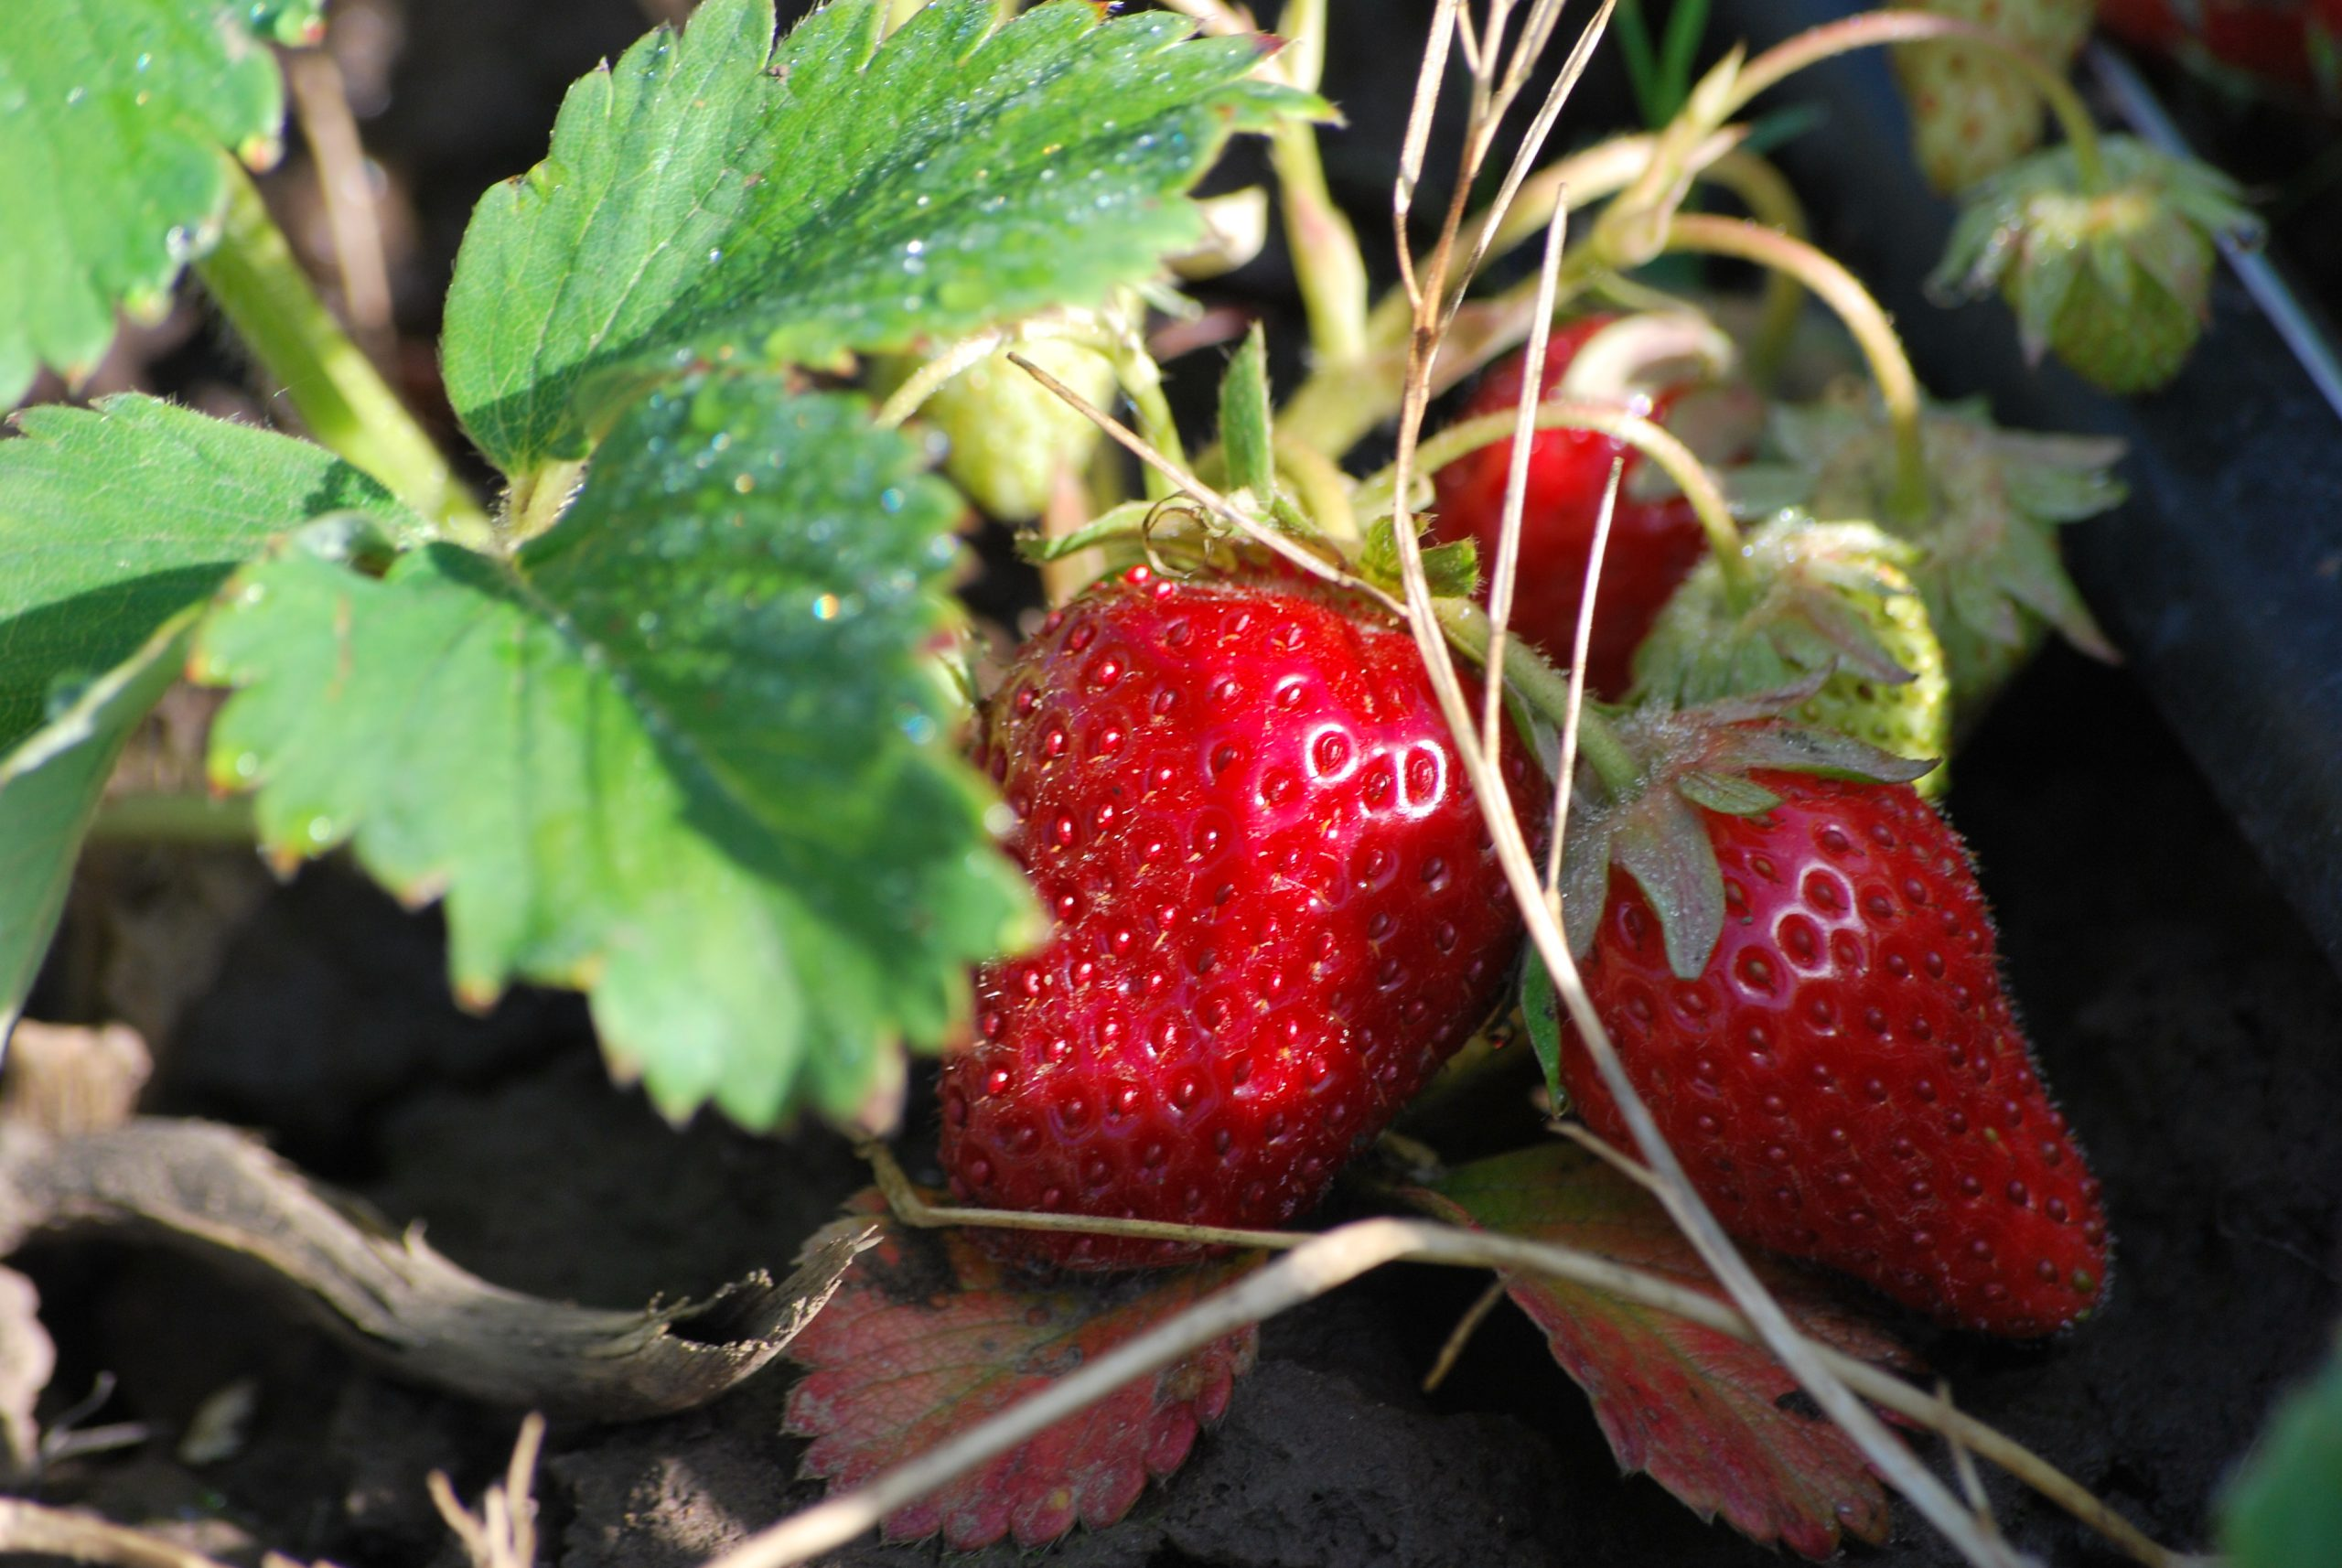 Stahlbush Island Farms Sustainable Frozen Vegetables ripe ripe strawberries in the field